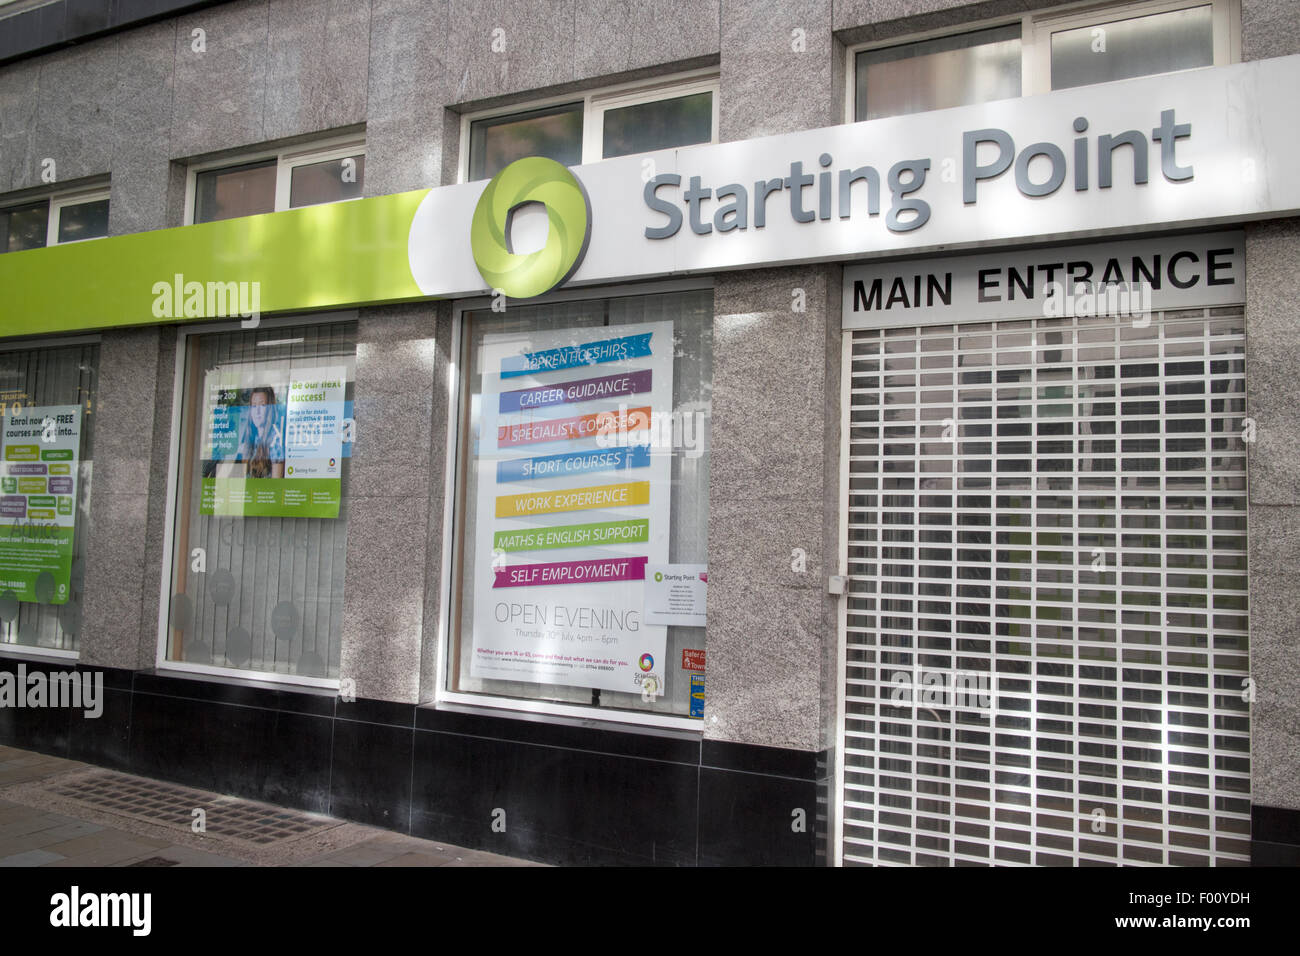 starting point careers and job information offices st helens uk - Stock Image